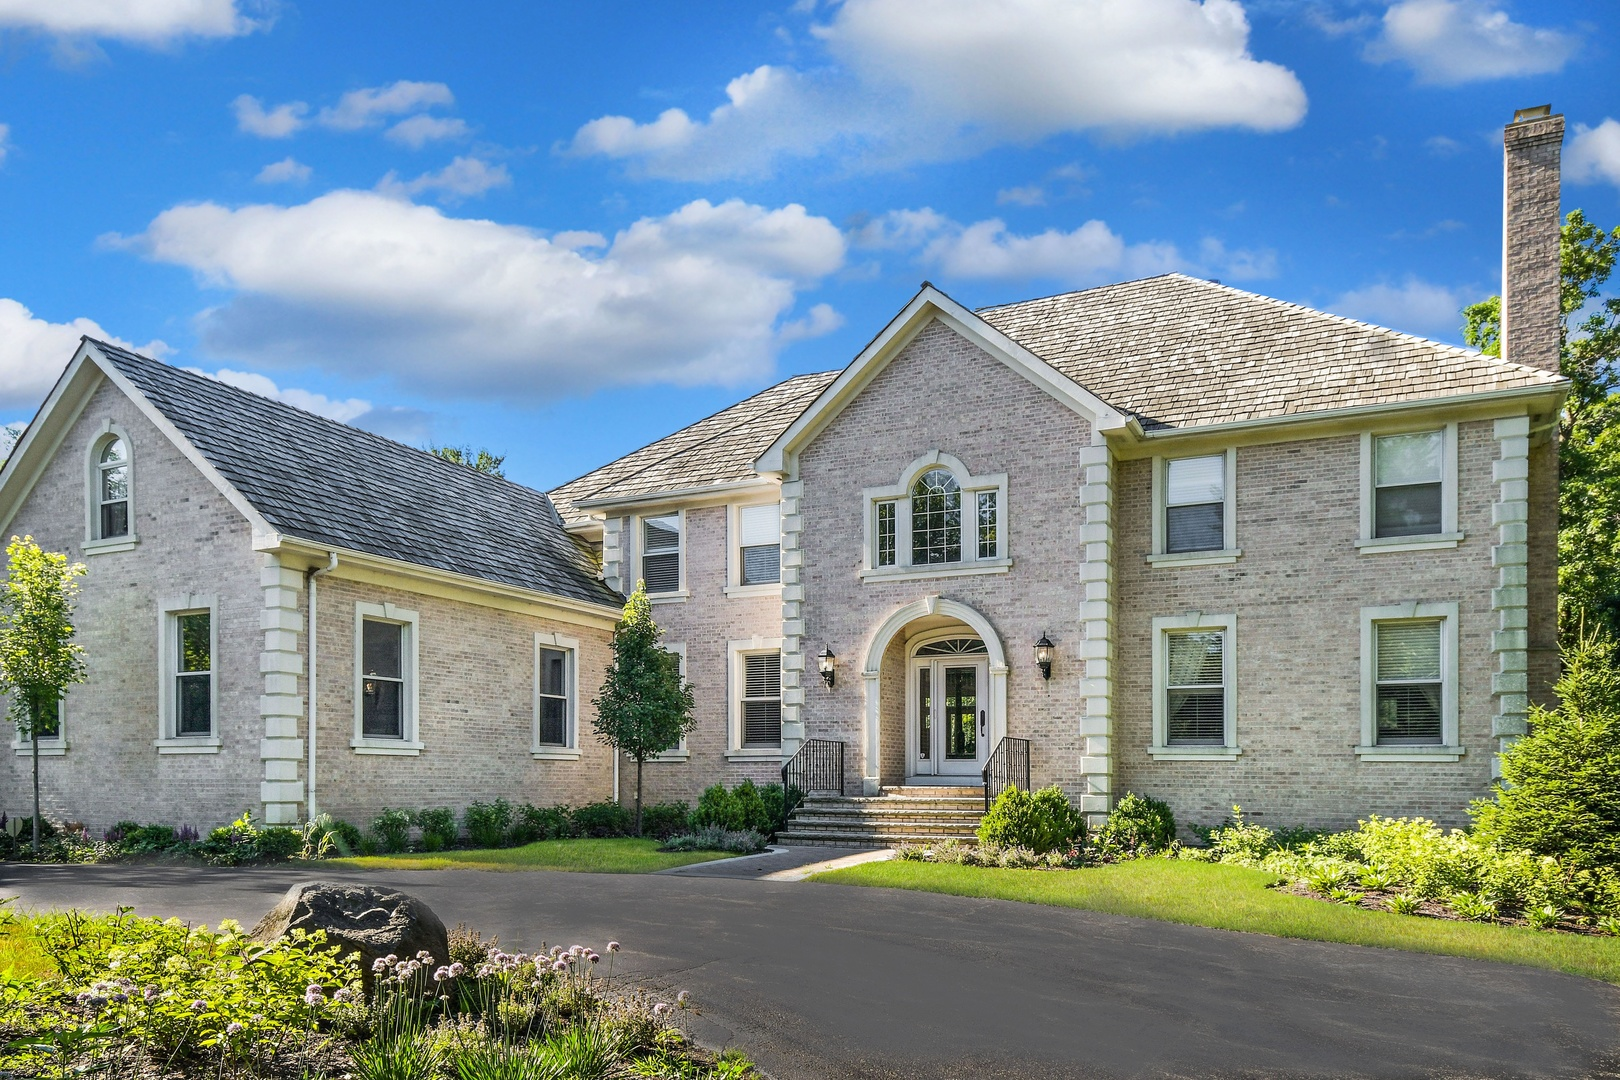 301 Belle Foret Drive, Lake Bluff, Illinois 60044